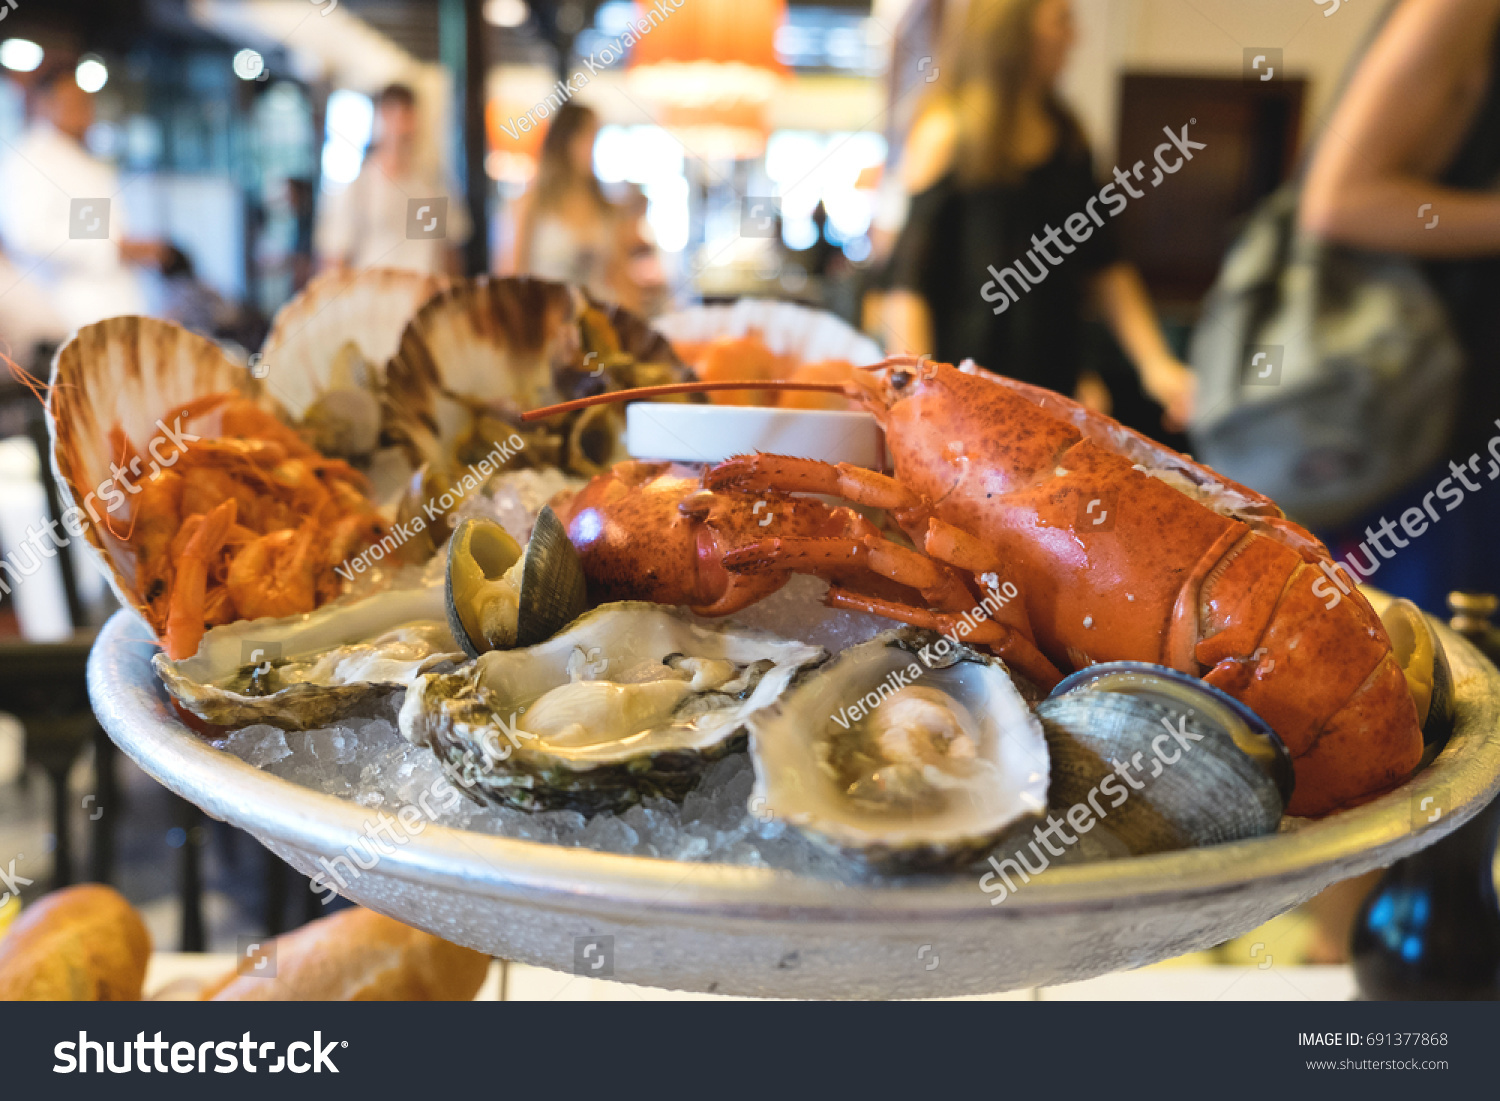 A Seafood Plate Of Delicious Mediterranean Catch The Day Served In Famous Restaurant